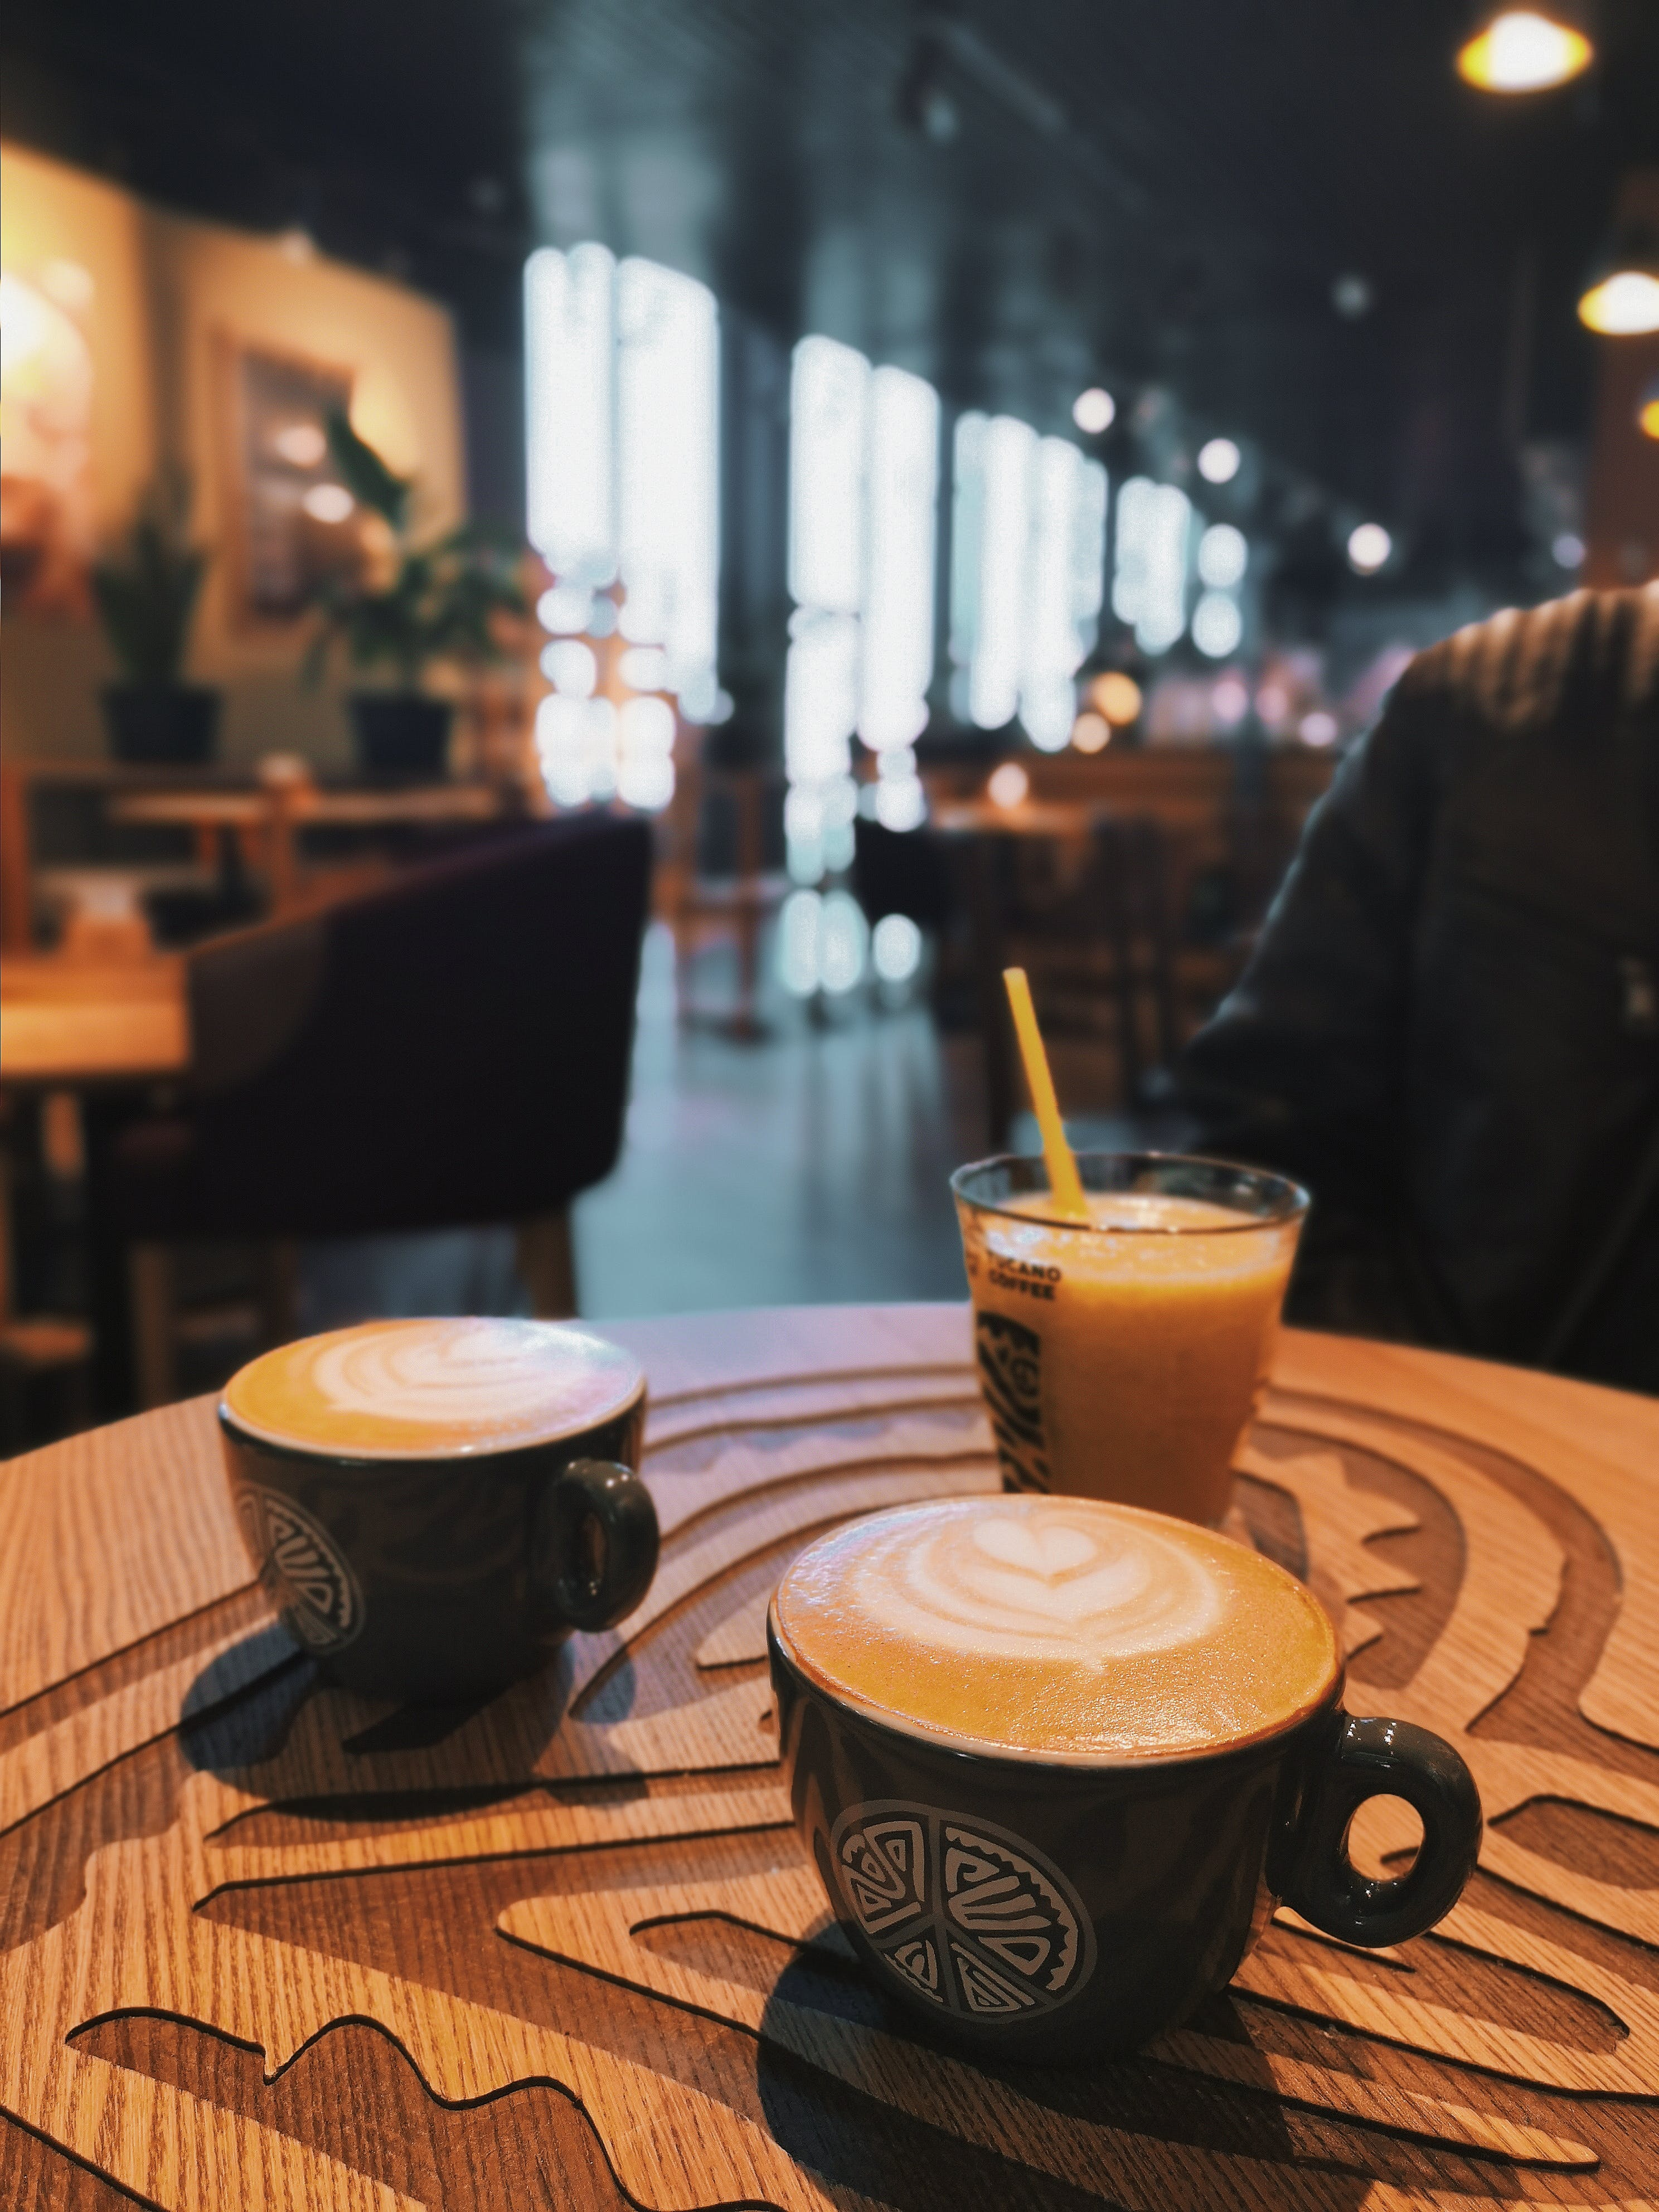 Two Cappuccino Near Ice Cold Drink on Table and Person Sitting Beside Brown Wooden Table